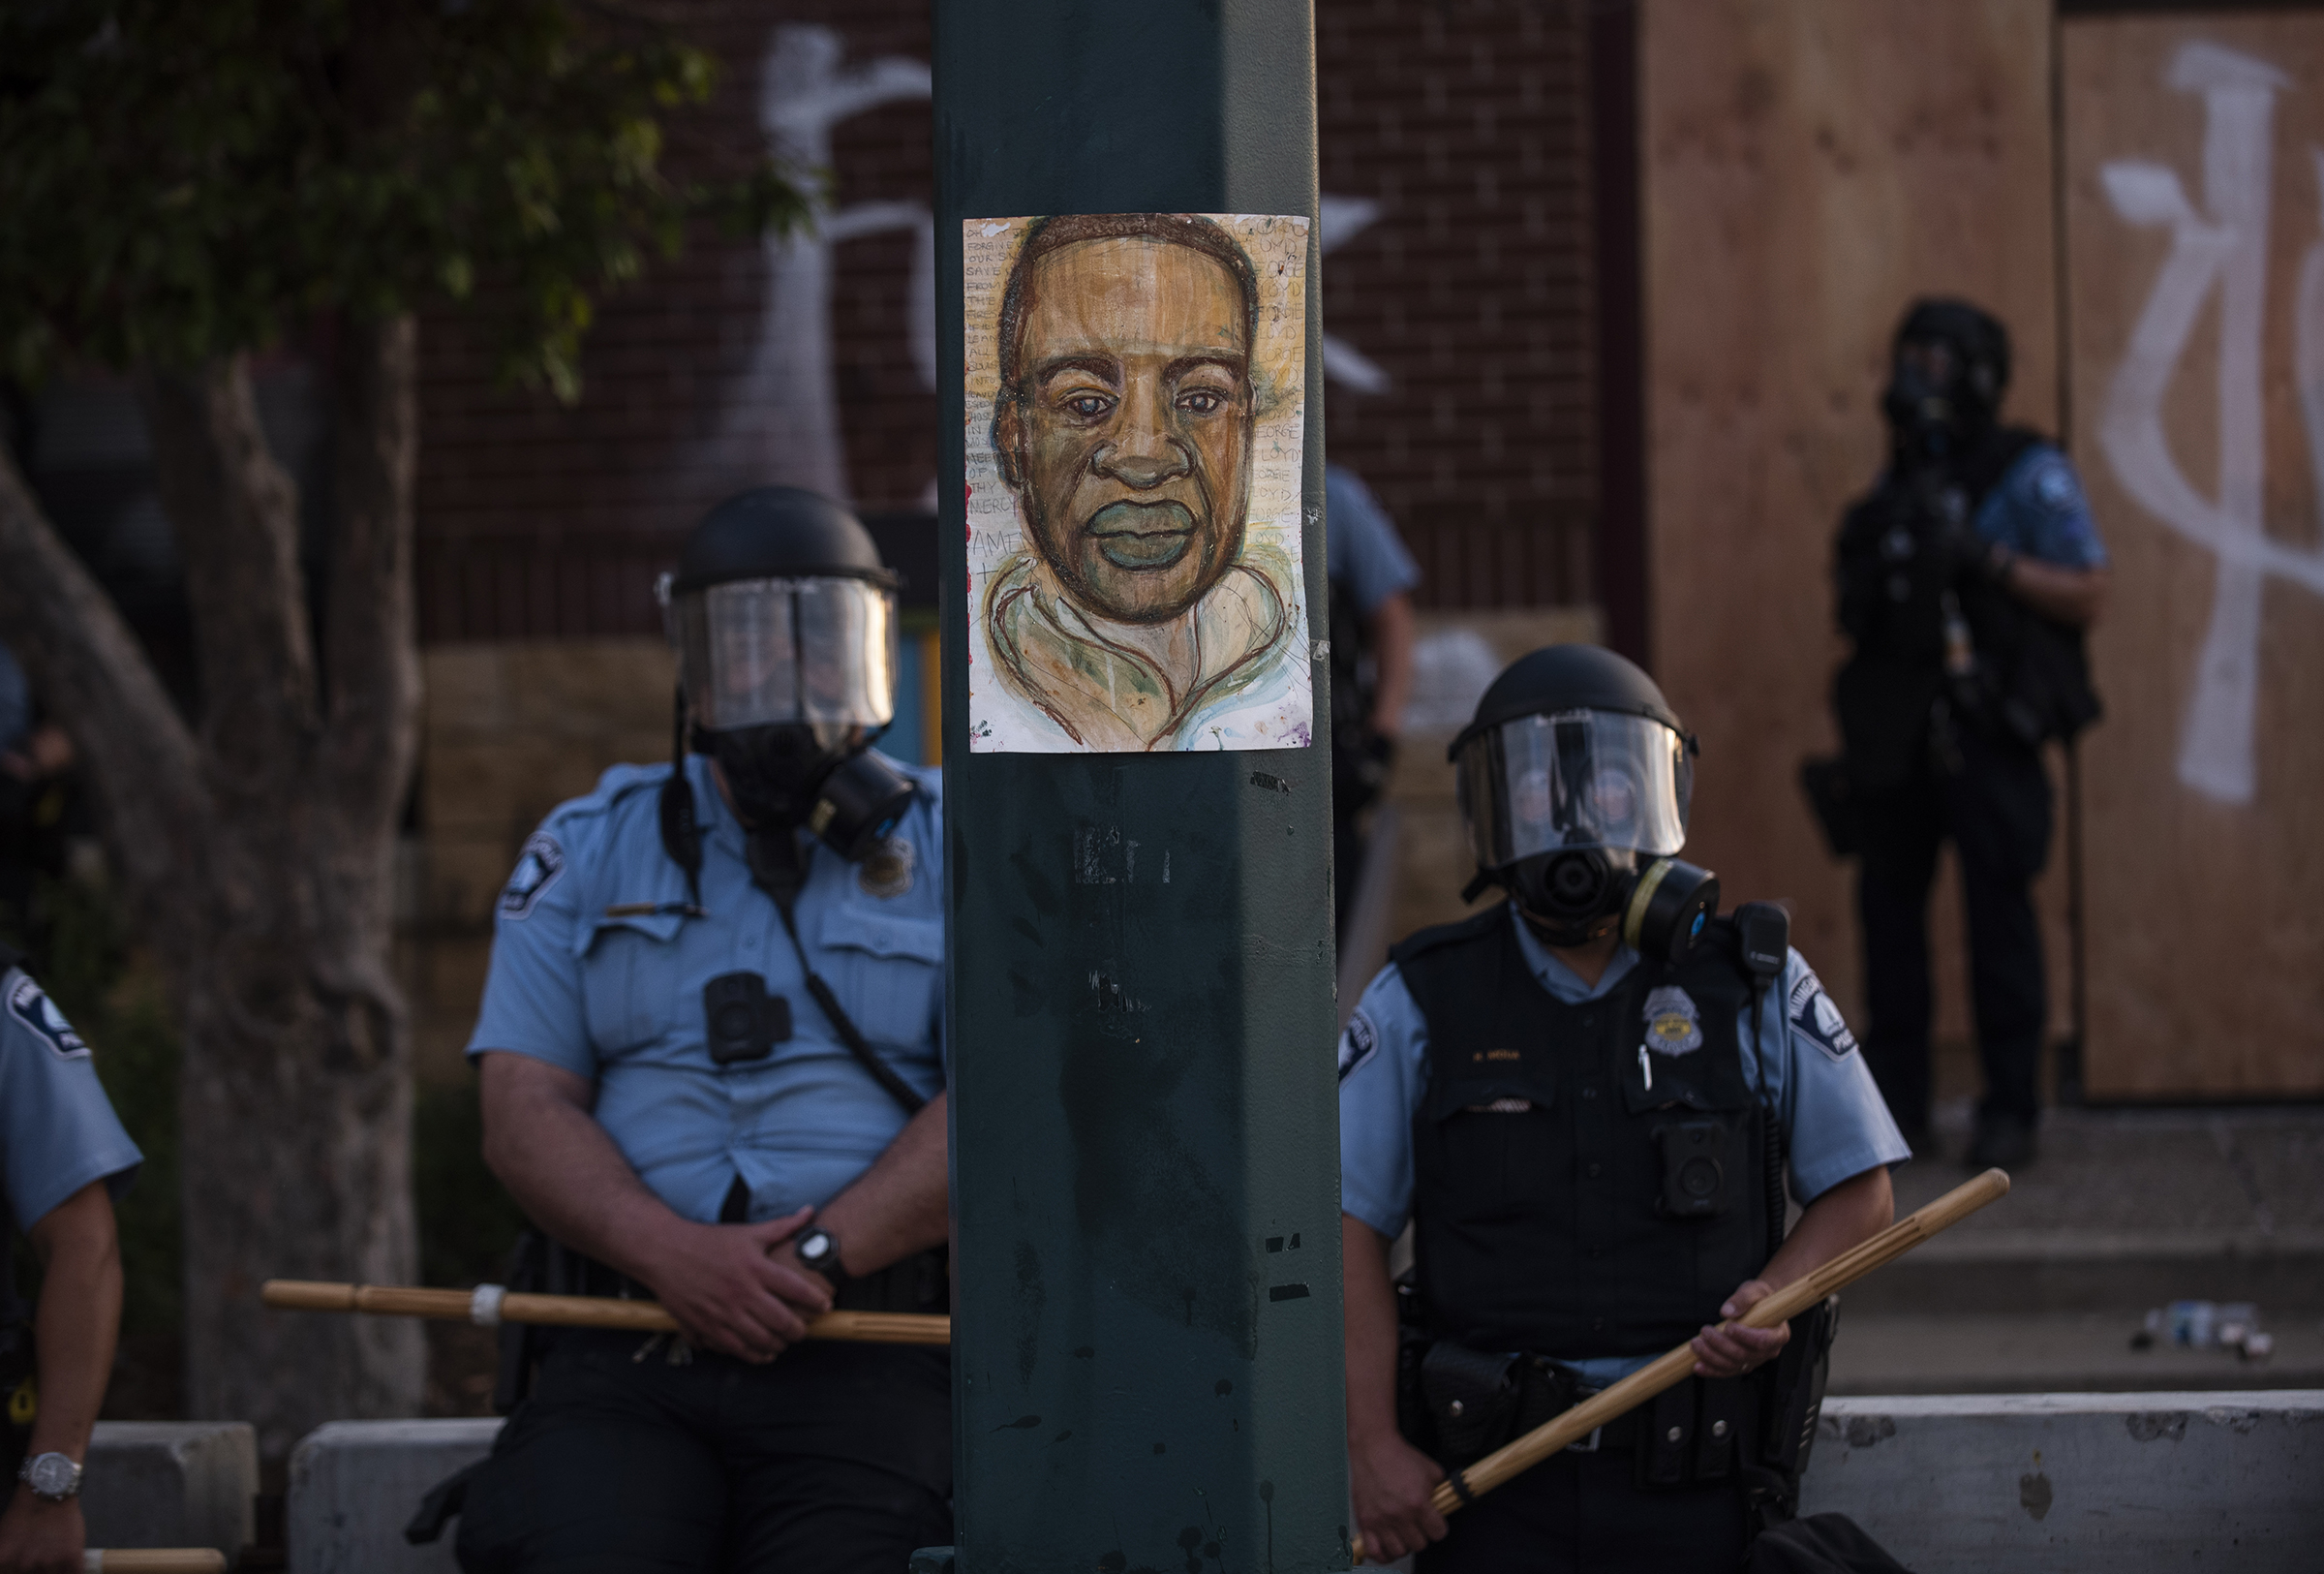 A portrait of George Floyd hangs on a street light pole as police officers stand guard at the 3rd precinct during a face off with protesters on May 27.